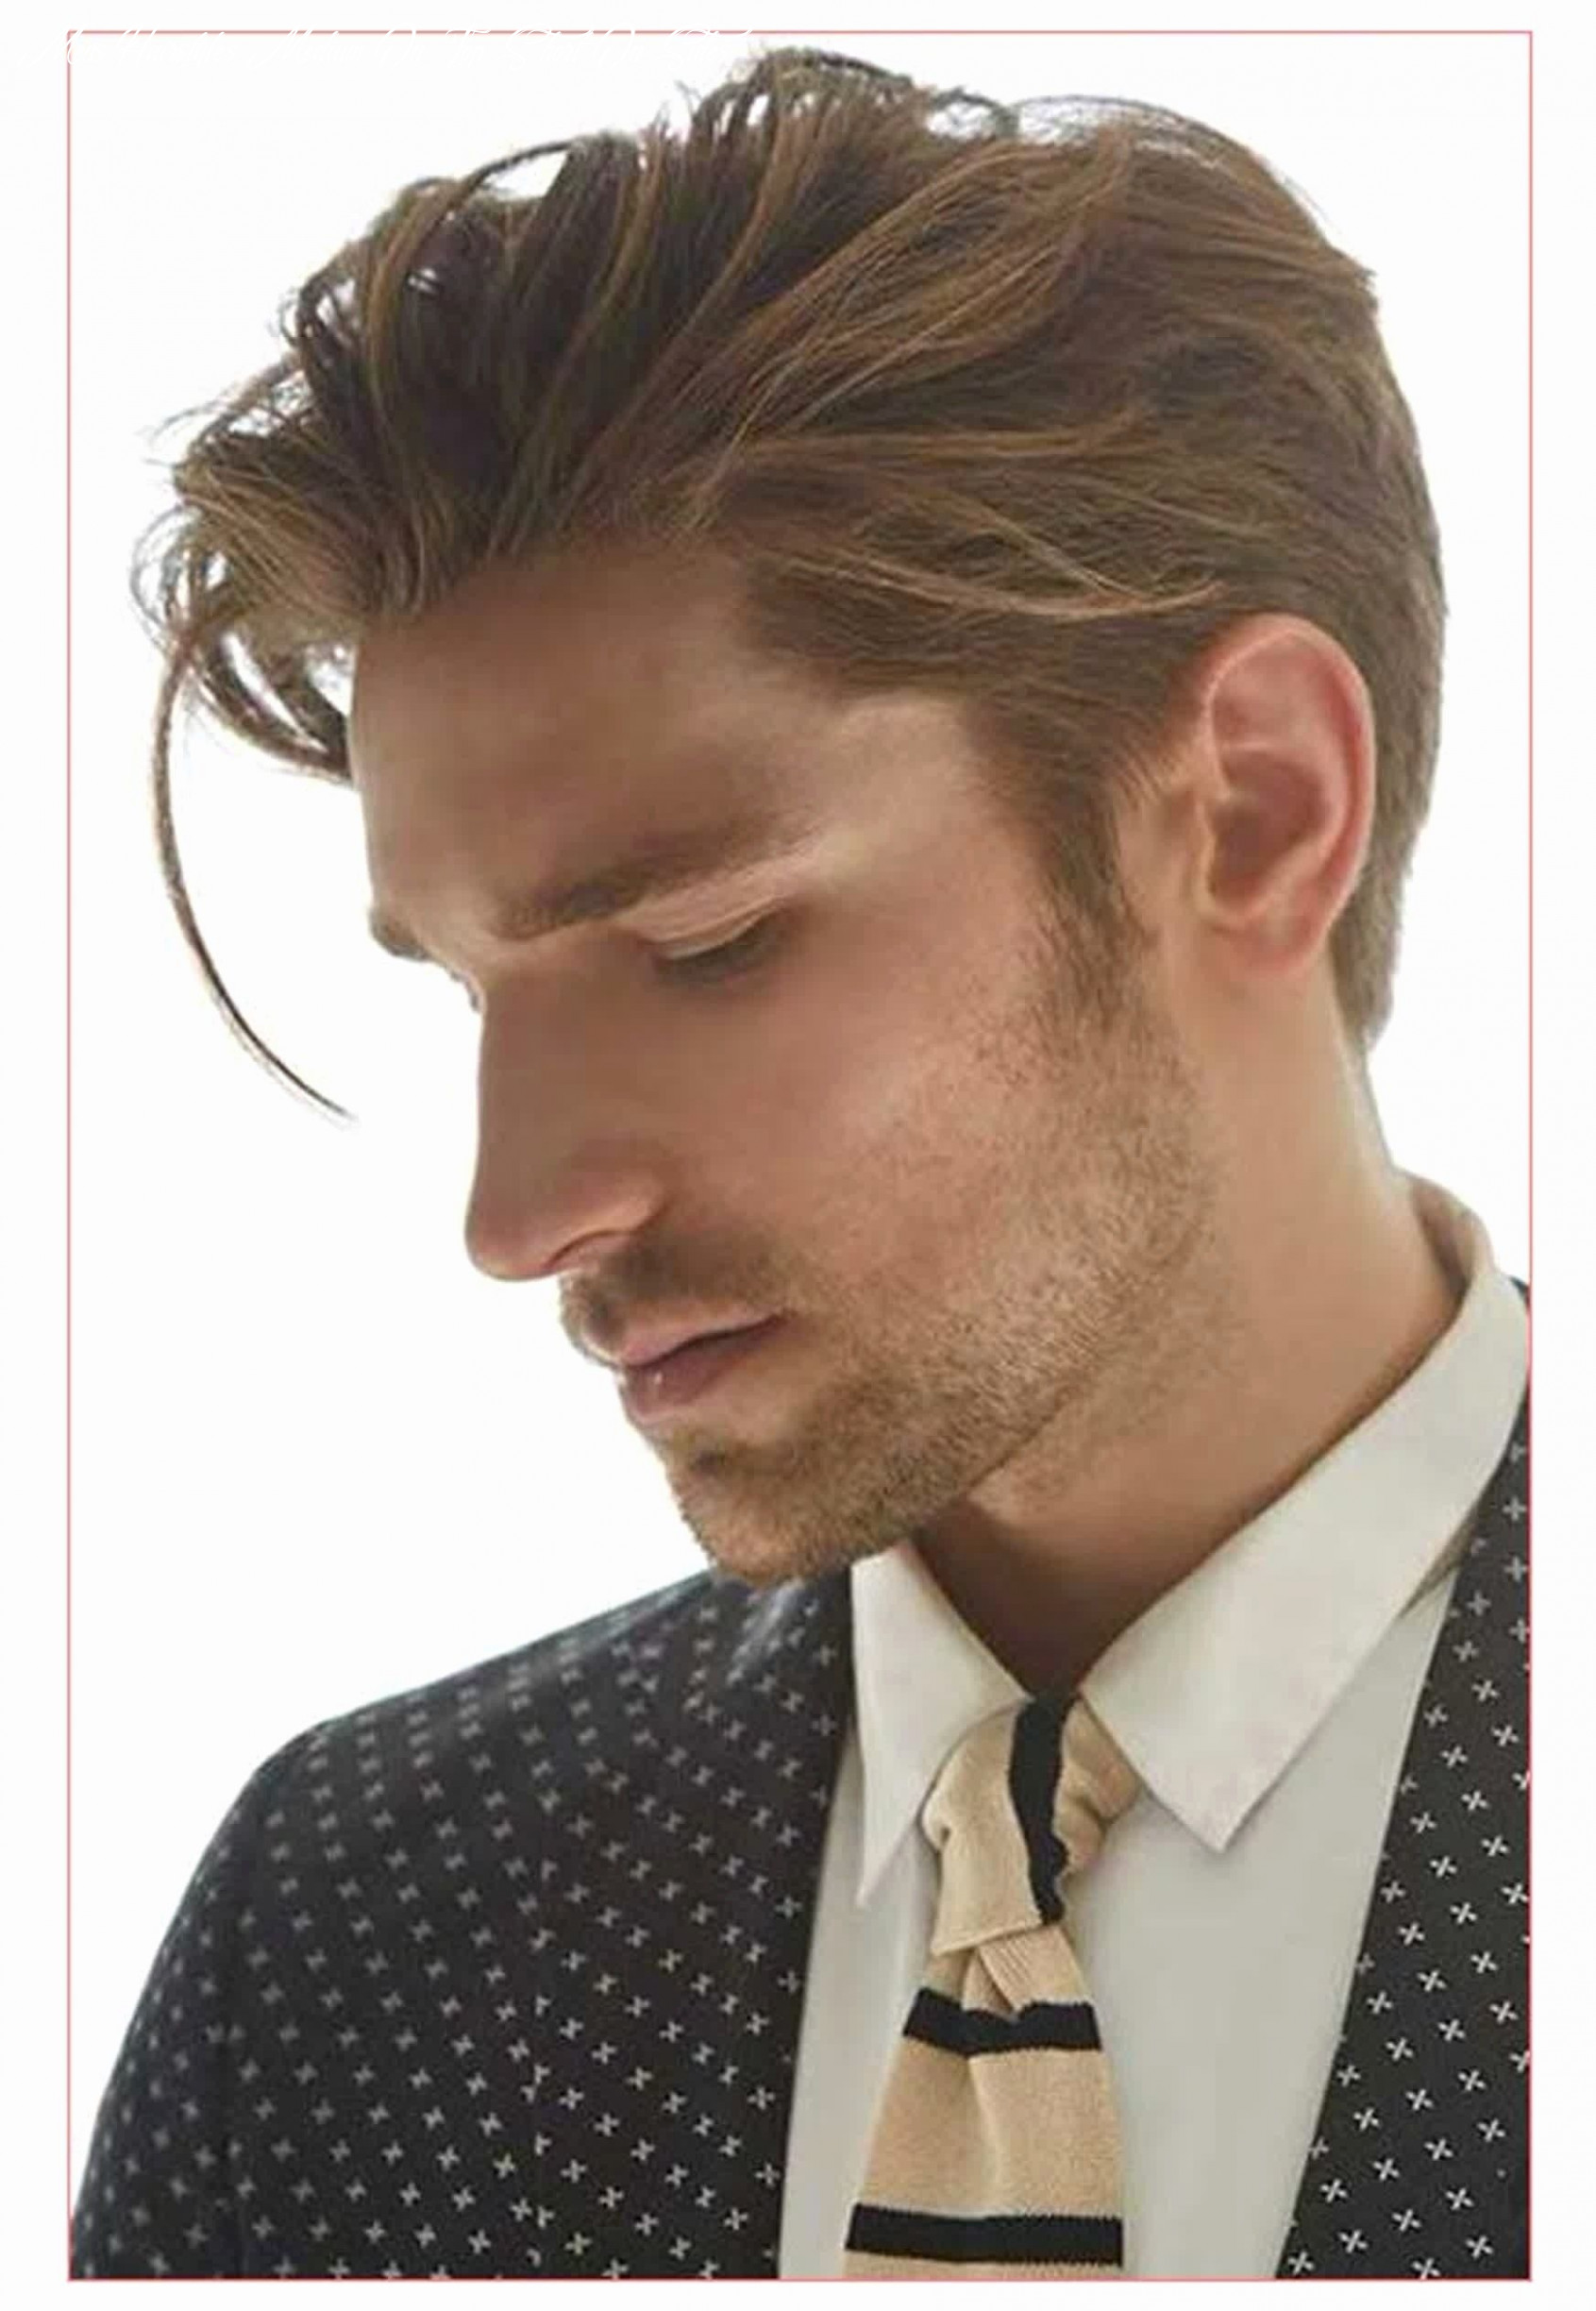 Completely new mens hairstyle long on top short on sides | mens